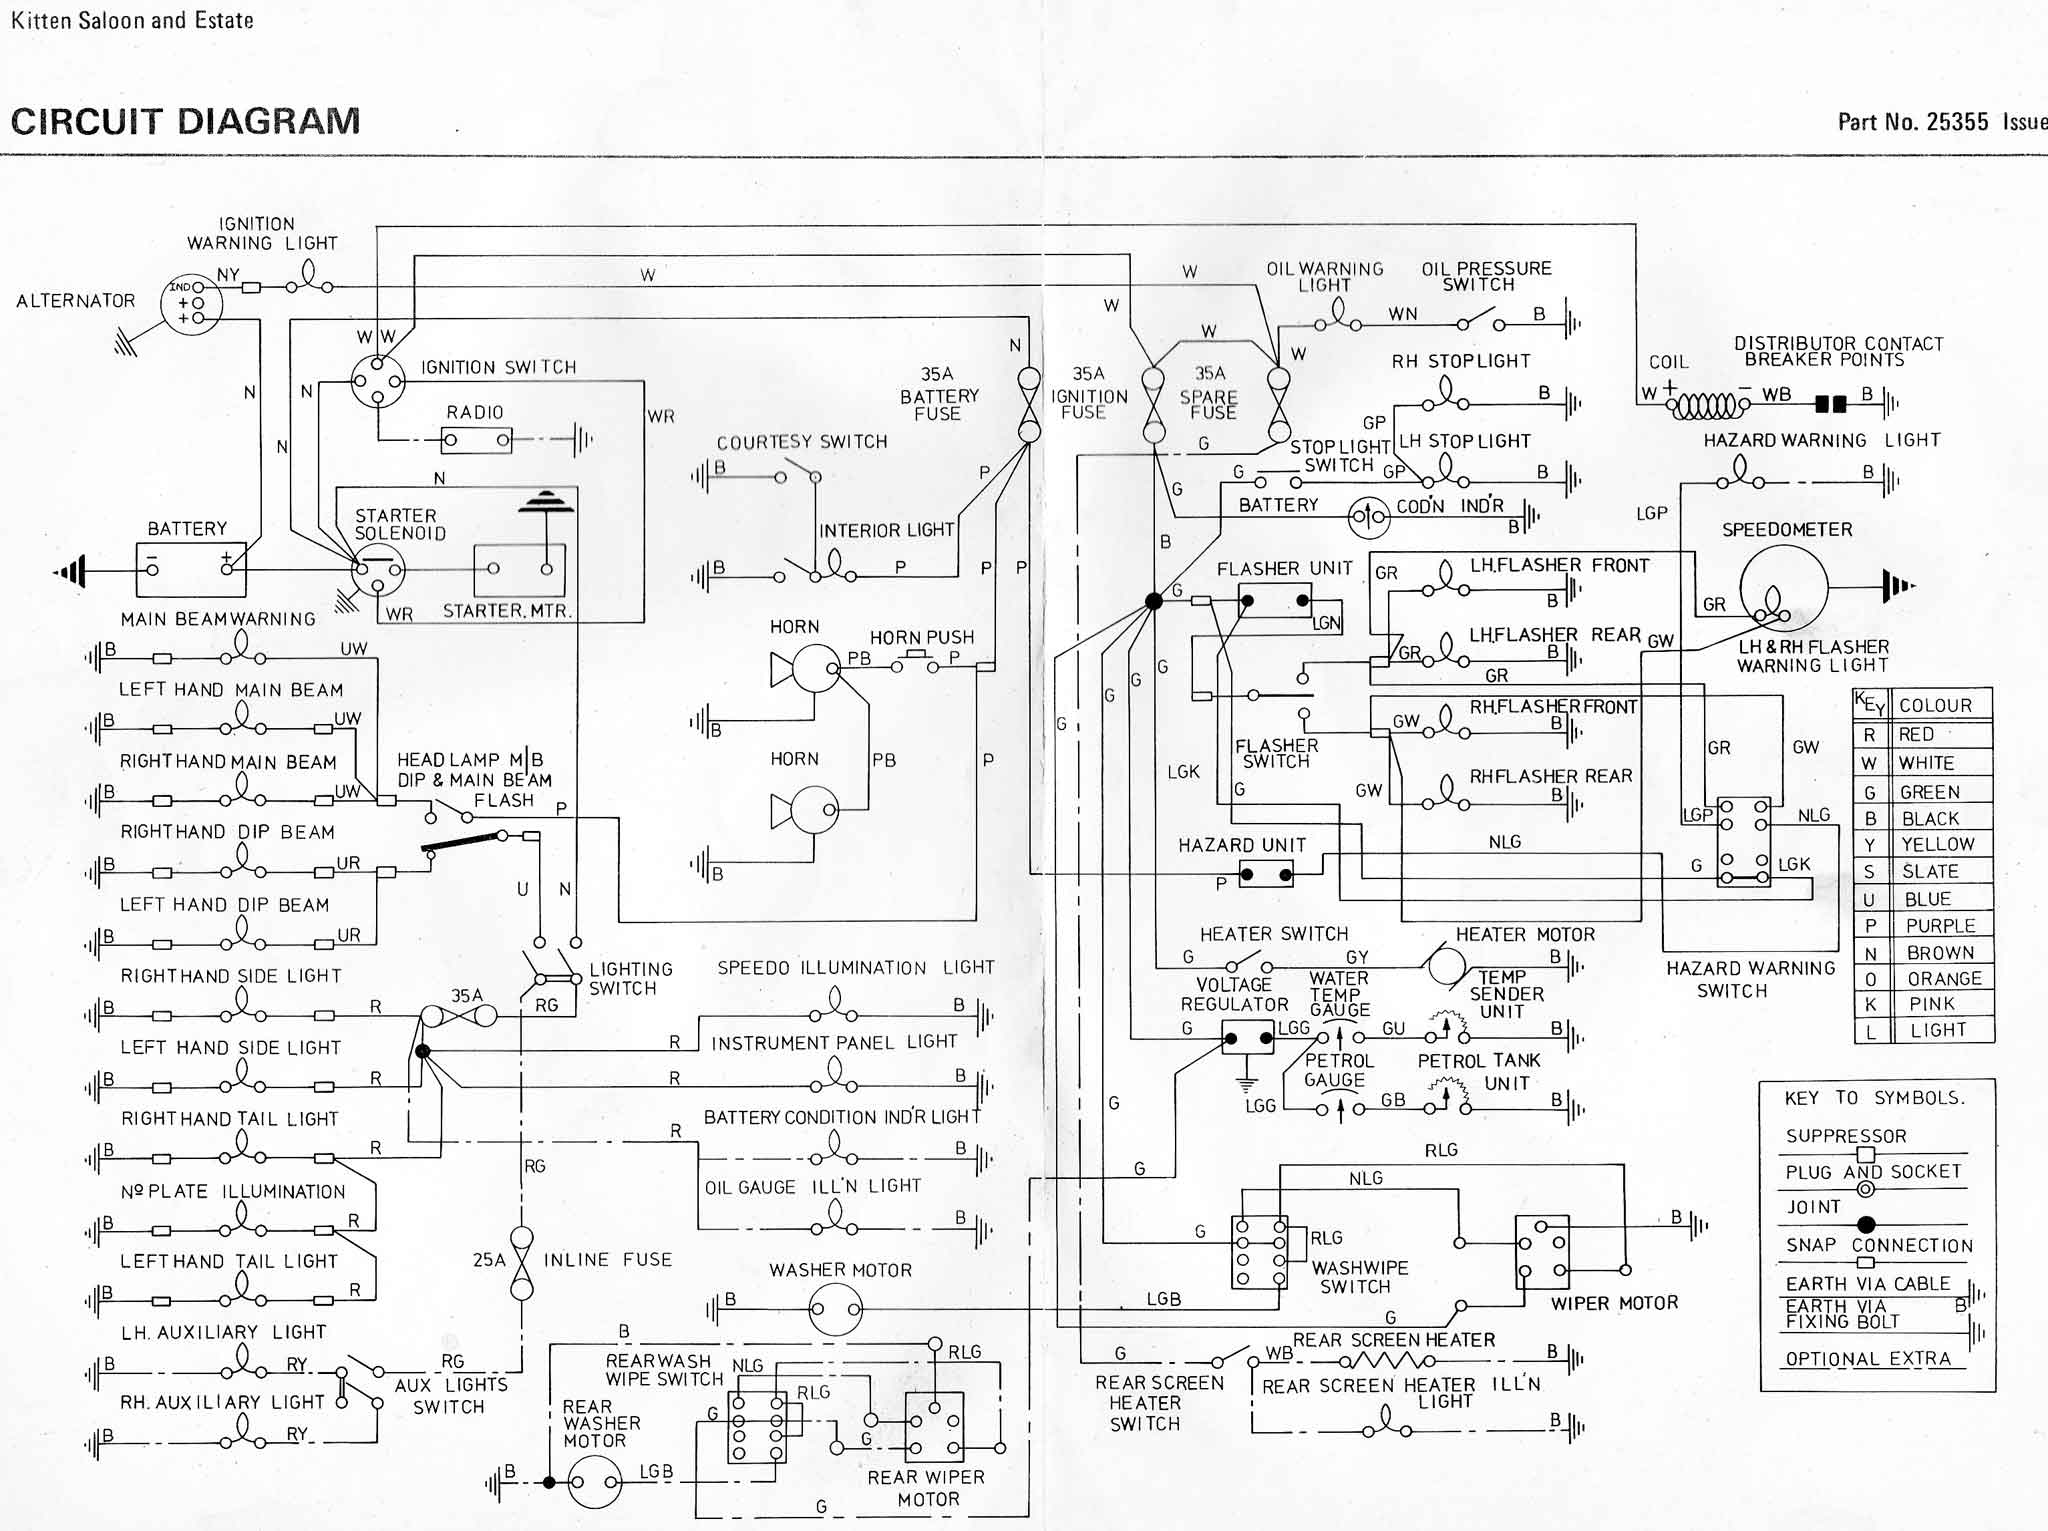 Reliant Heaters Wiring Diagrams Anything Diagram For Water Spares And Specification Sheets Rh Reliantspares Com 3 Phase Heater Installation